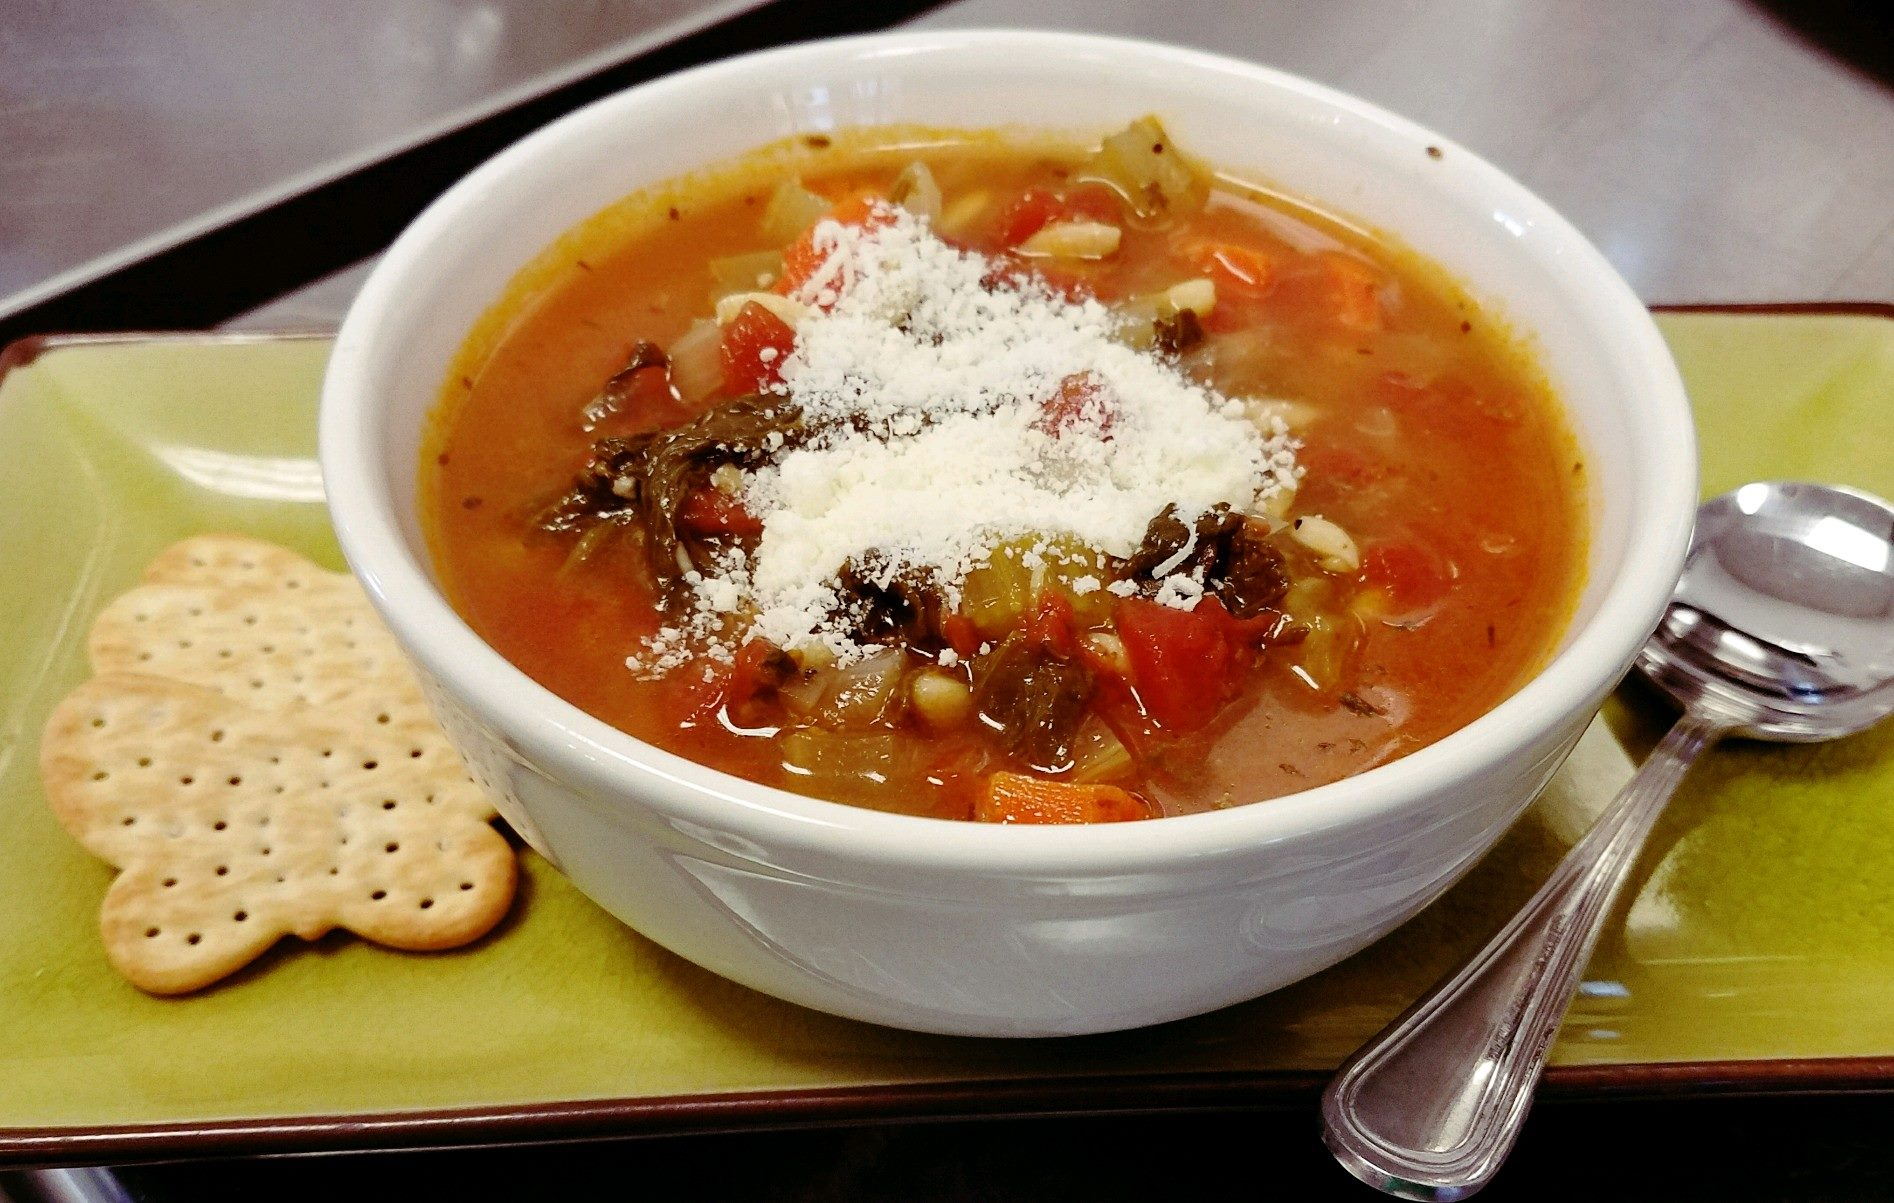 A vegetable soup garnished with cheese. With a side of crackers.